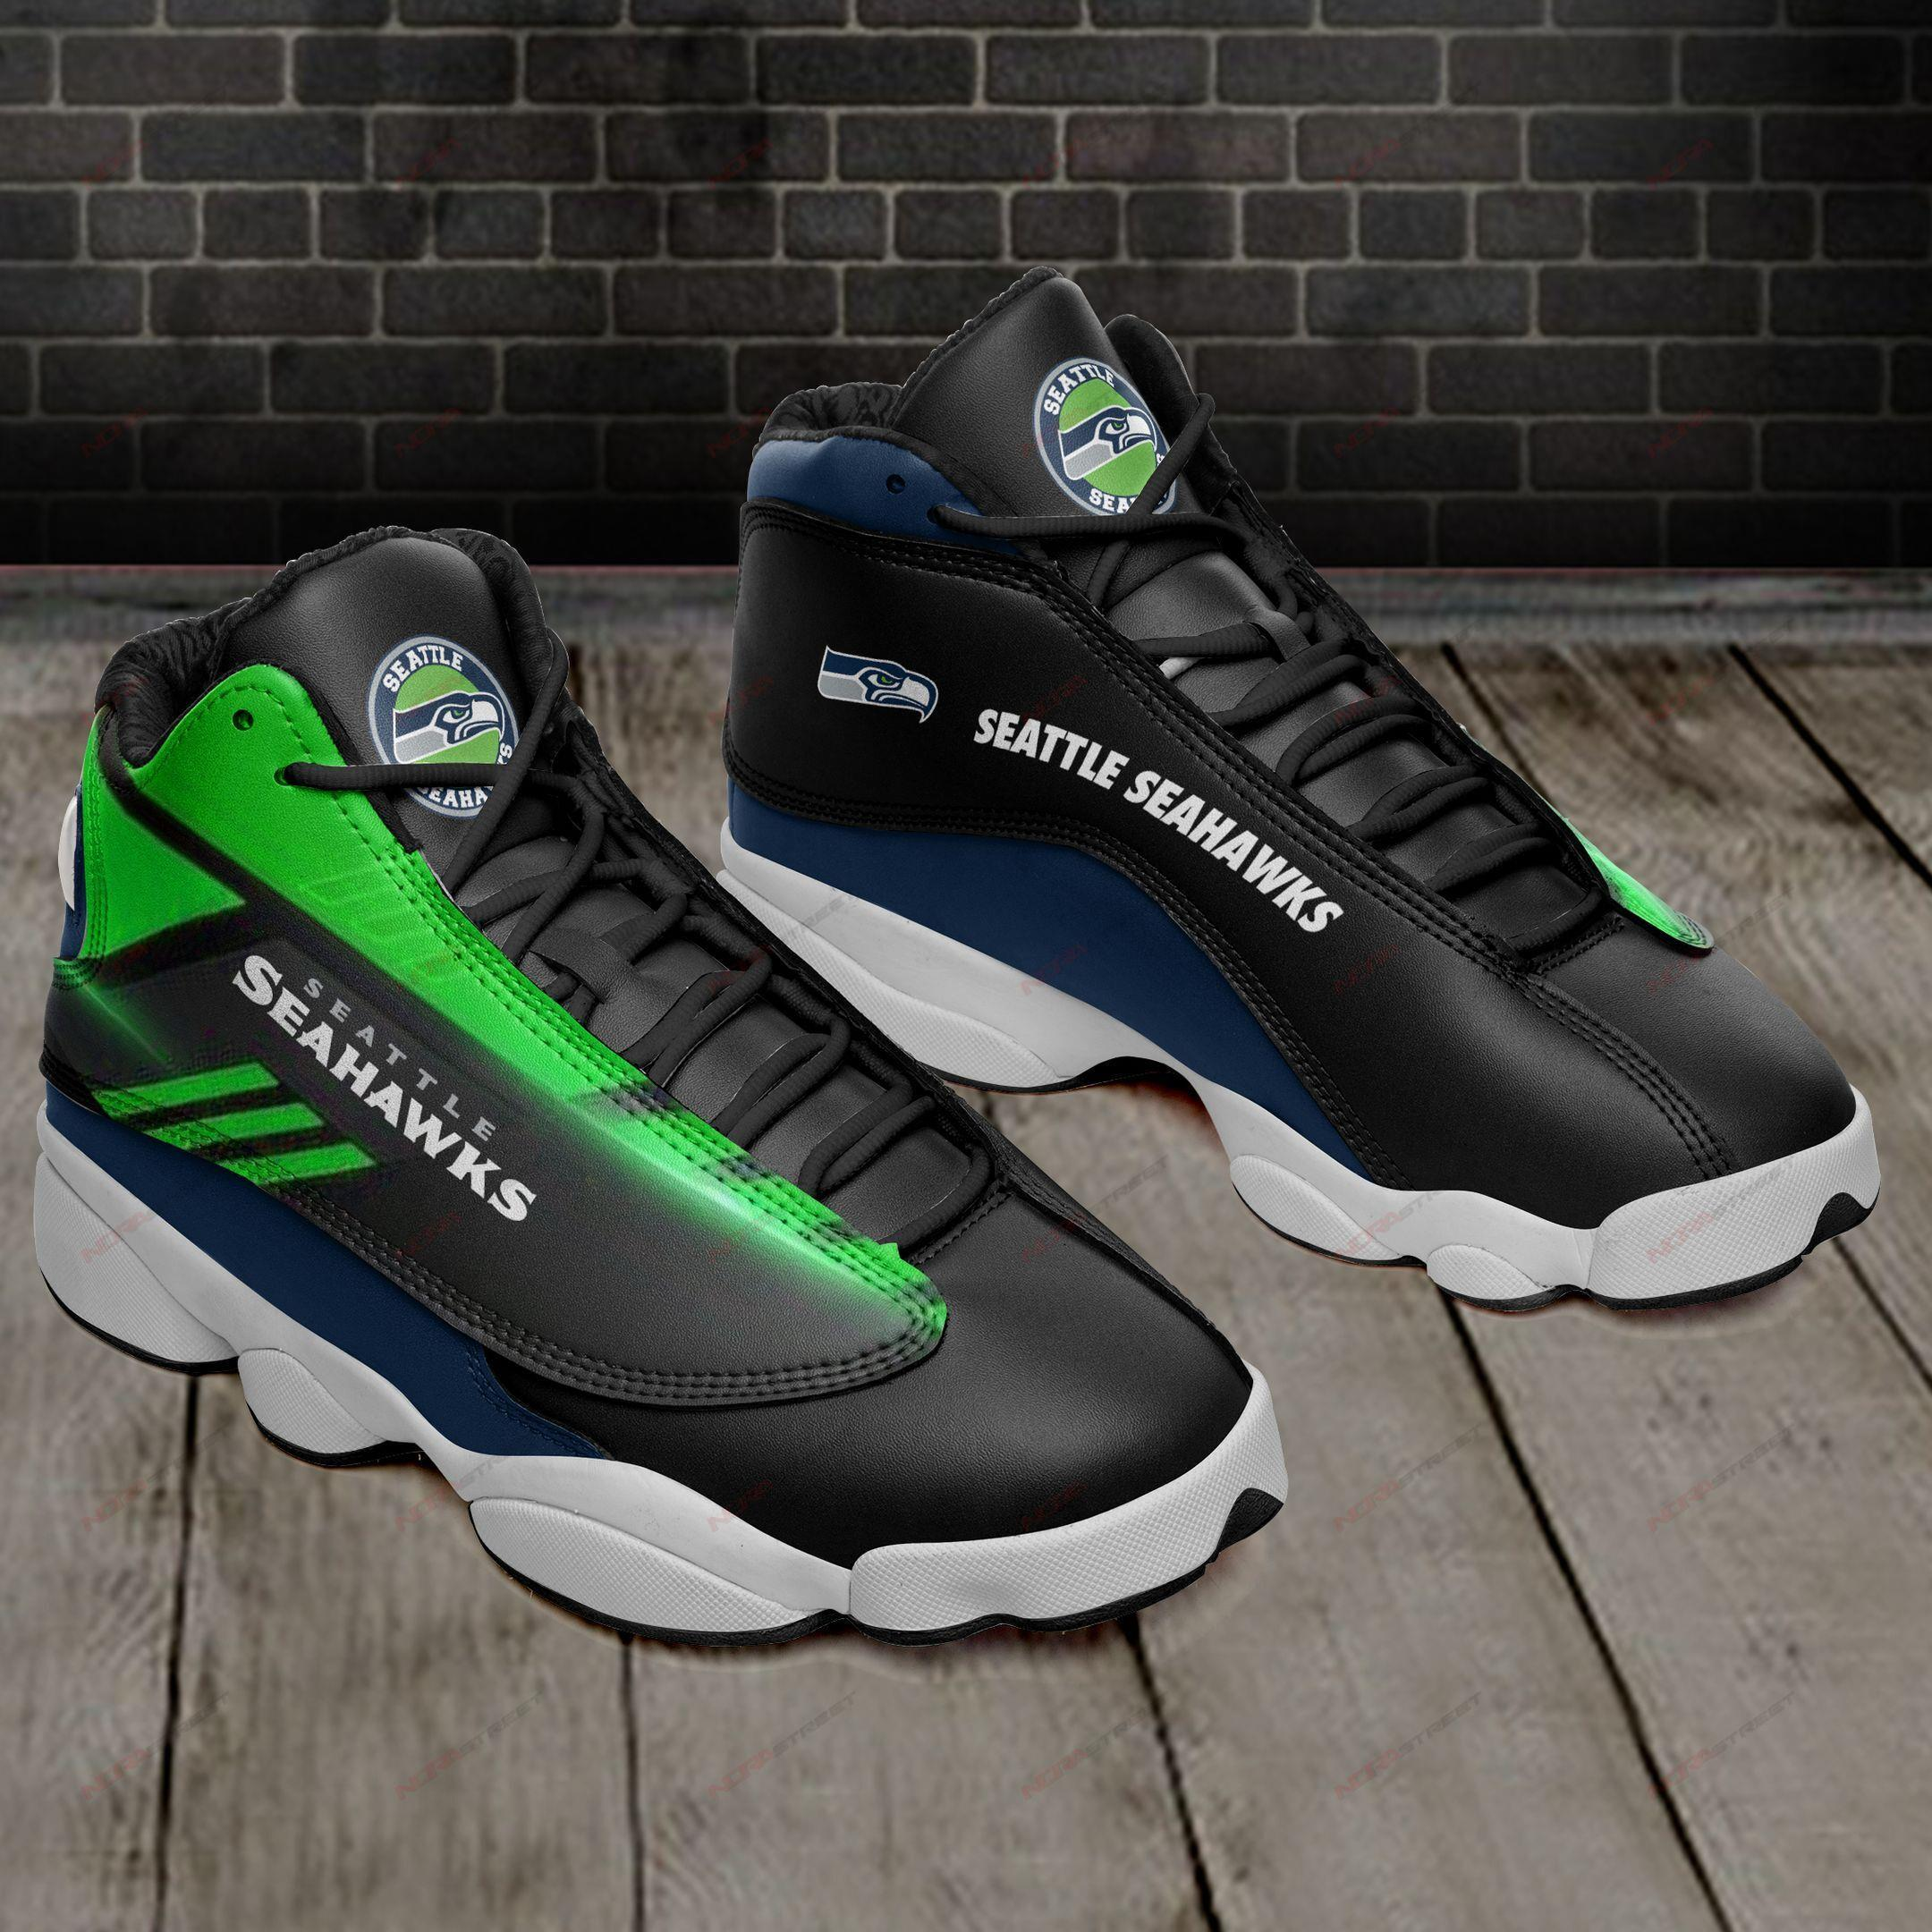 Seattle Seahawks Air Jordan 13 Sneakers Sport Shoes